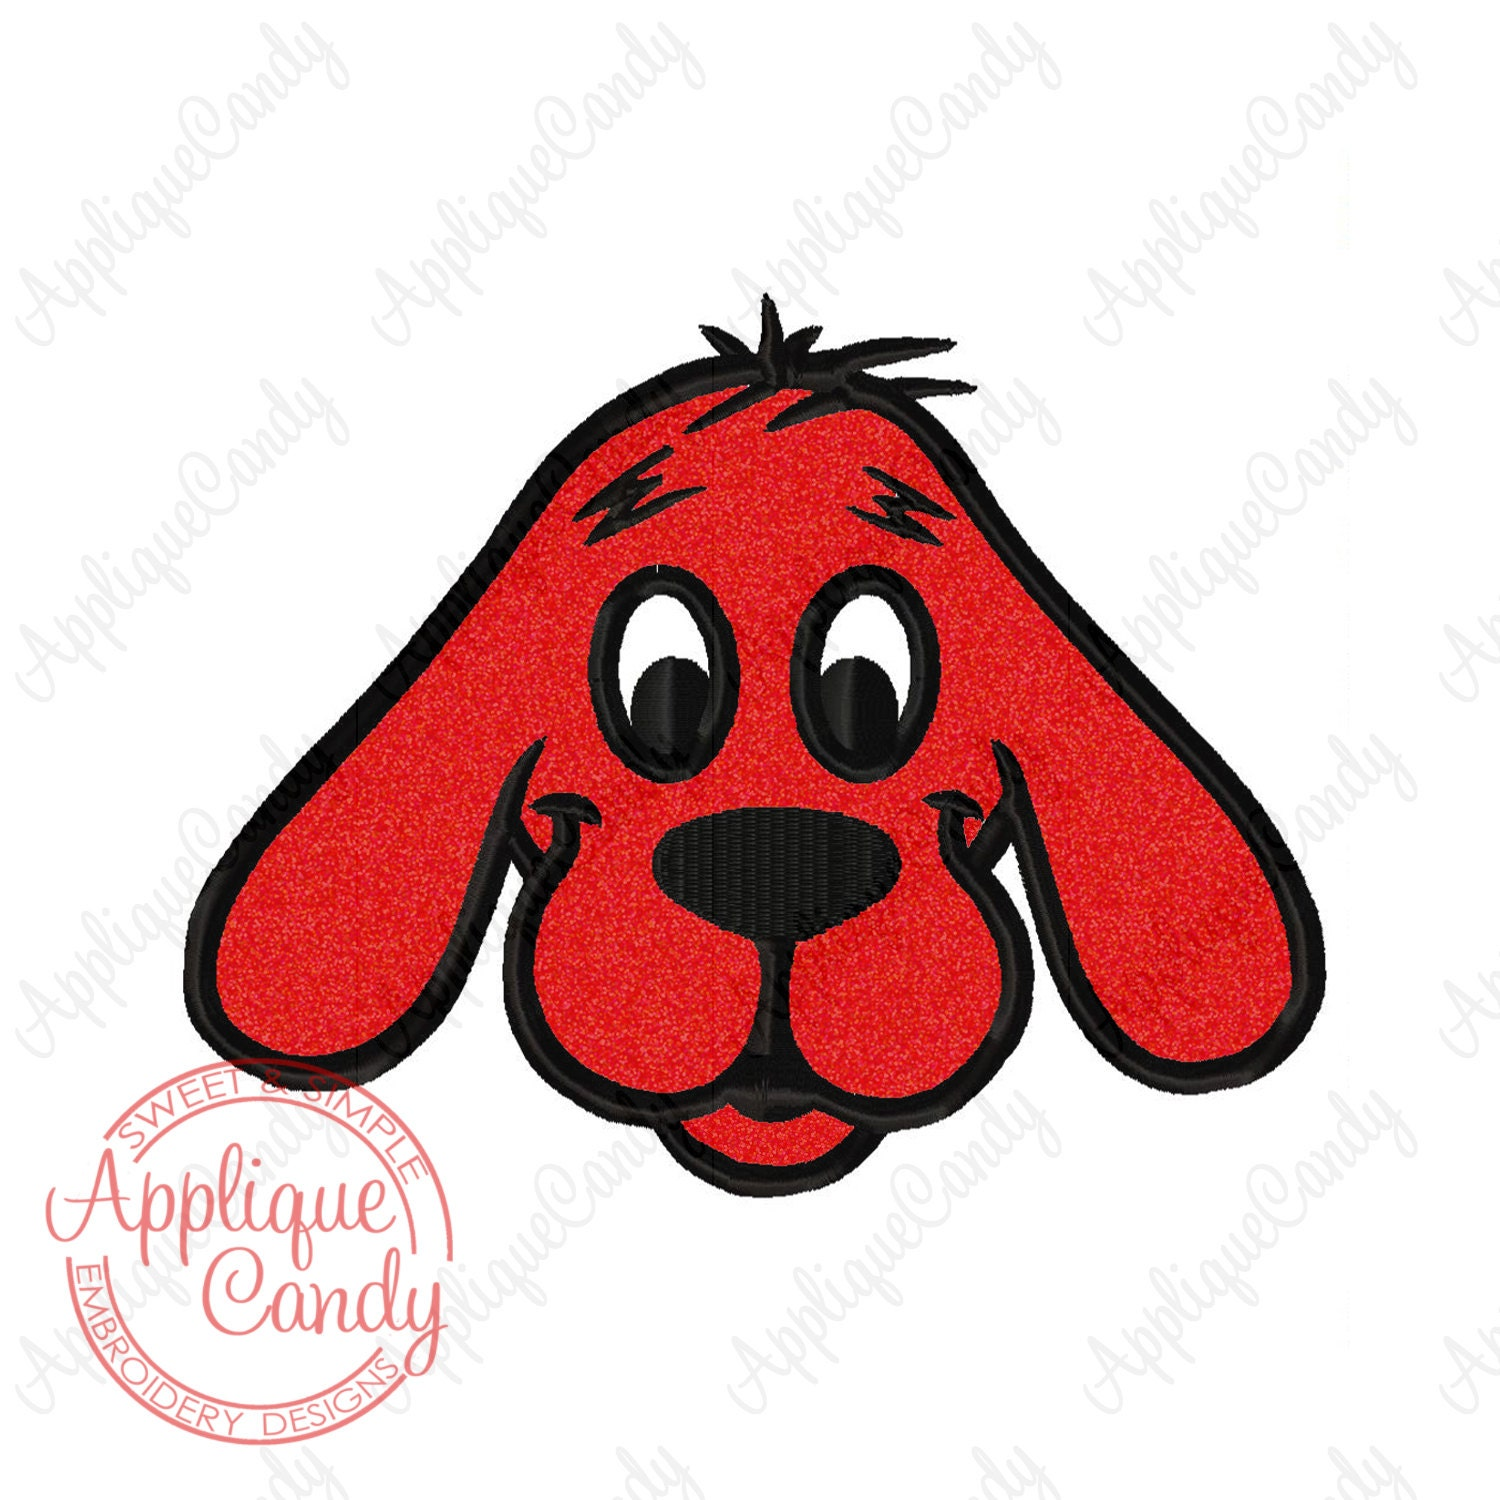 CliffOrd Big Red Dog Applique Machine Embroidery Design 4x4